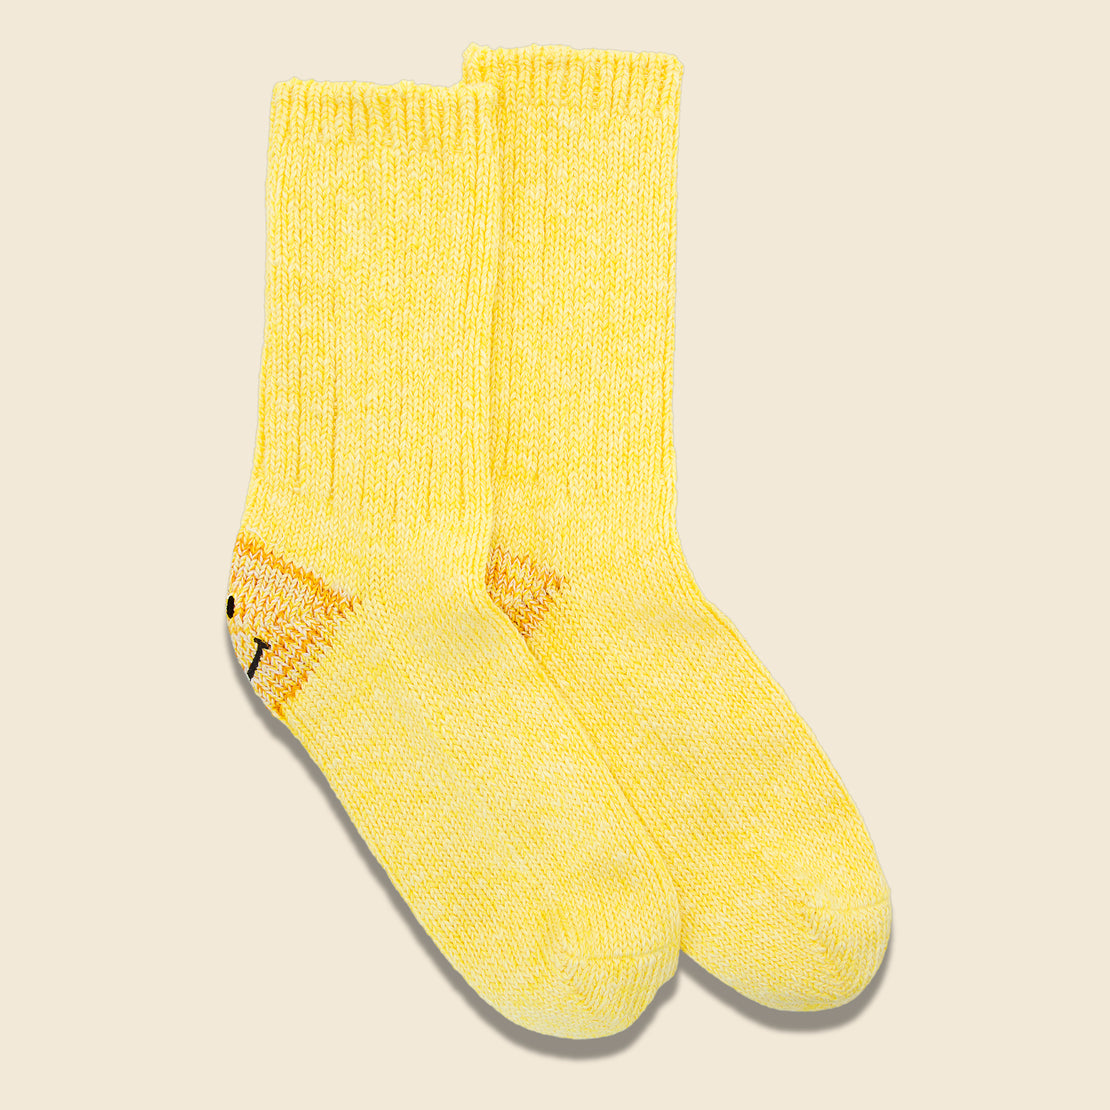 56 Yarns Rib Heel Smile Socks - Yellow